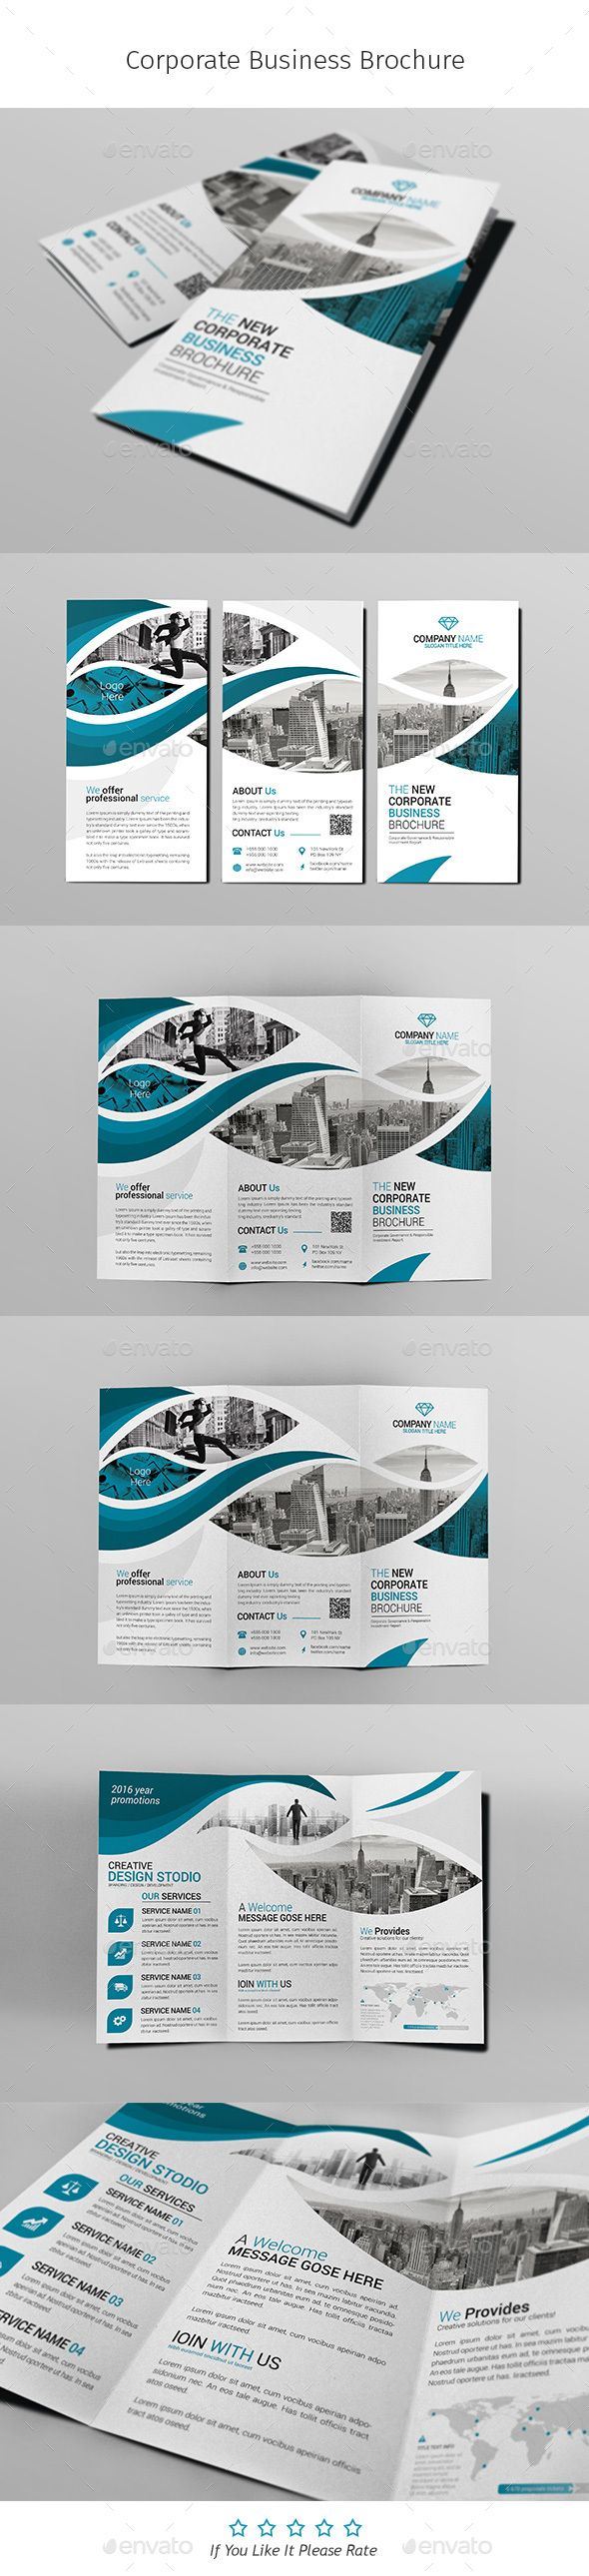 A4 Corporate Business Flyer Template Vol 01 | Pinterest | Business ...